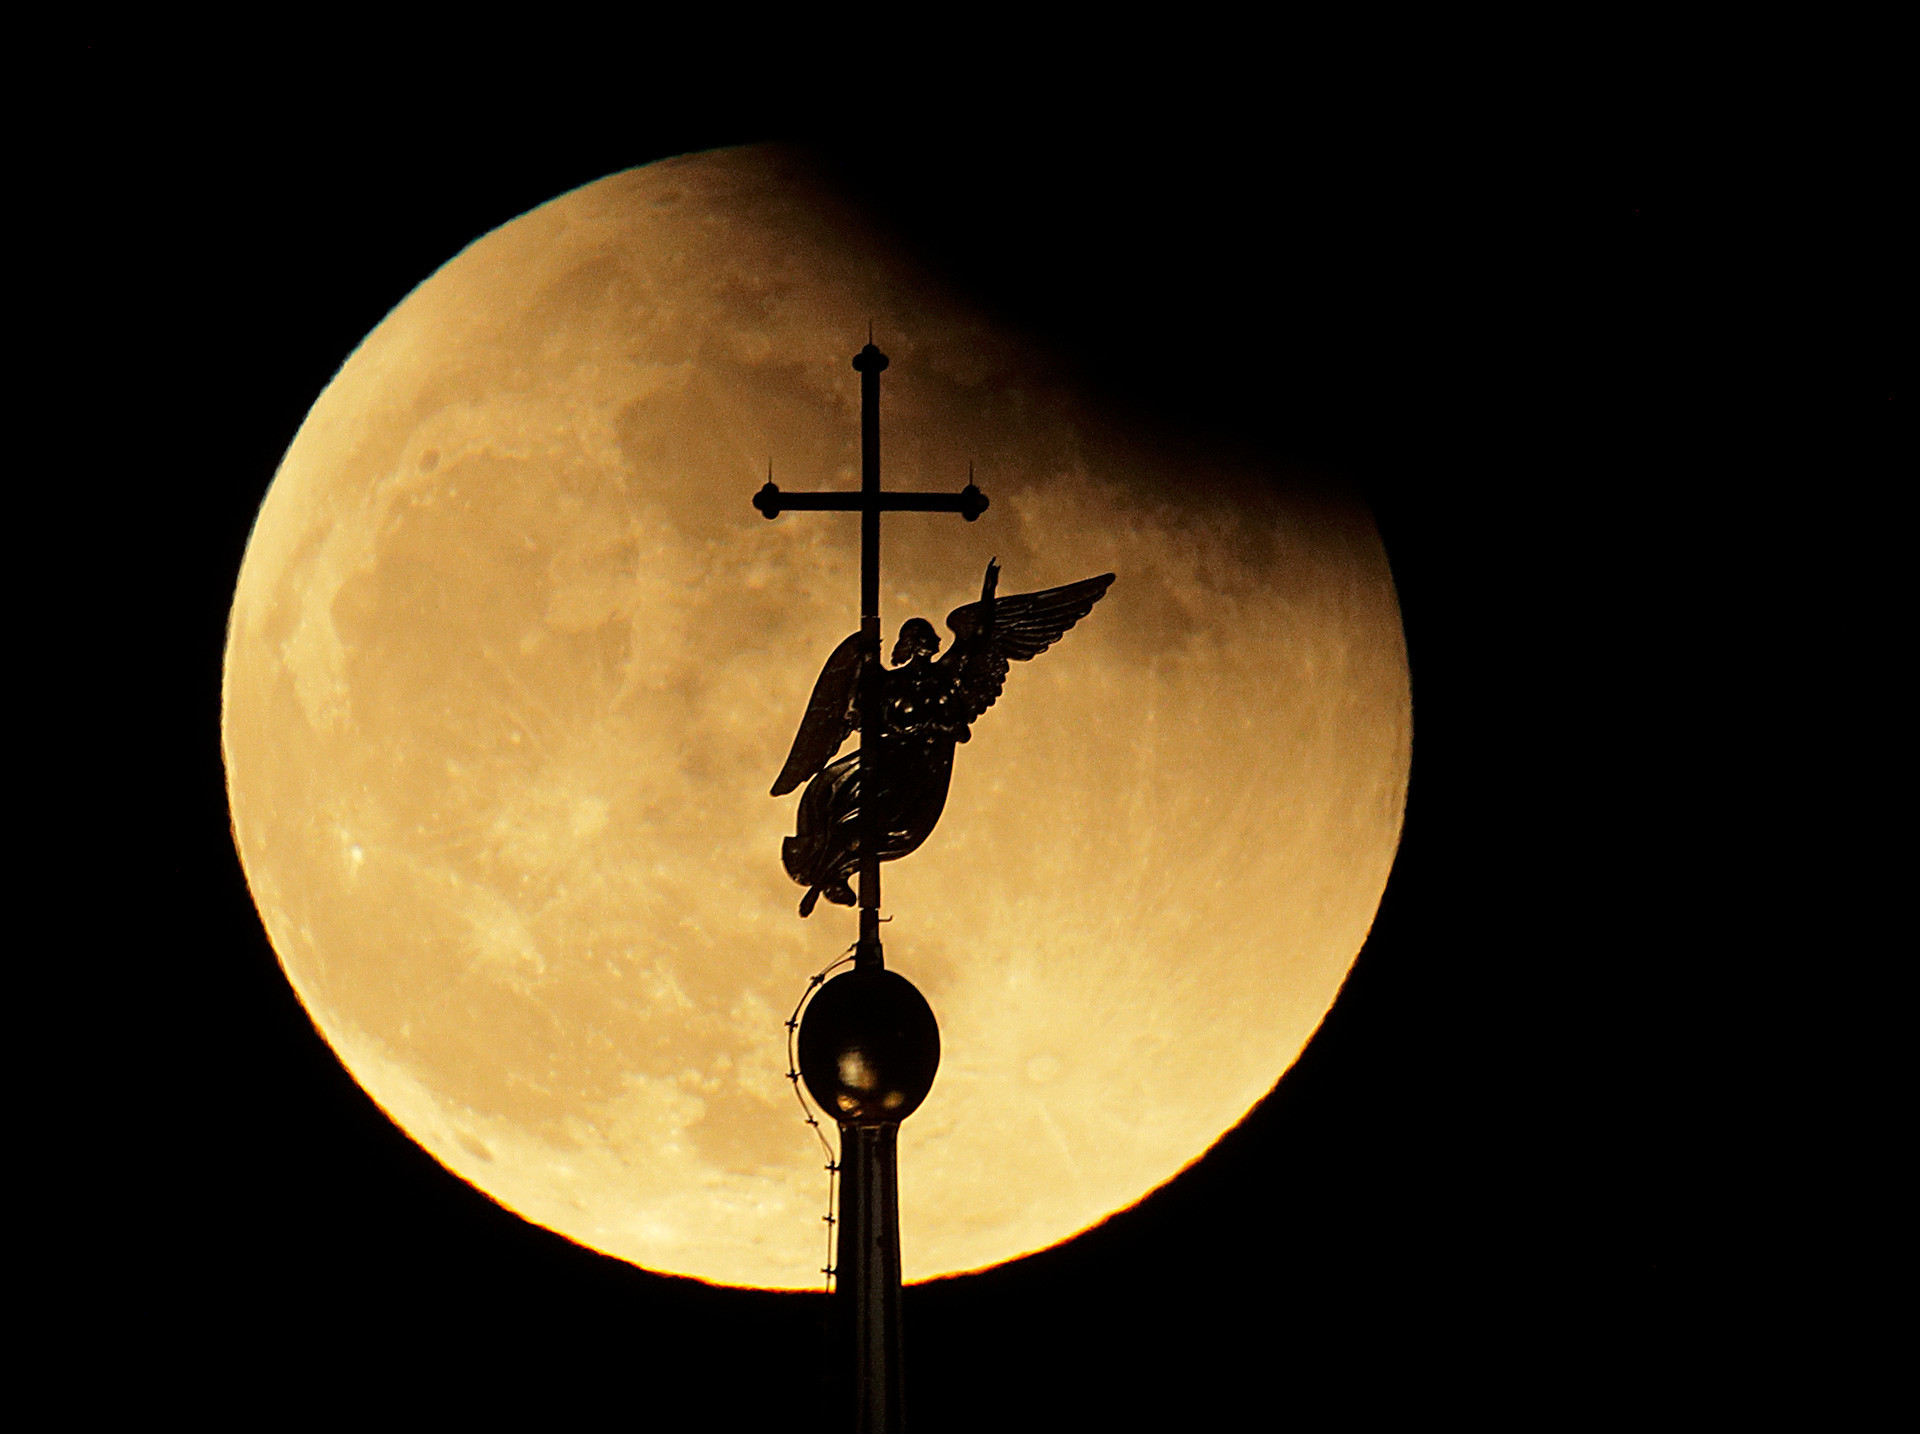 The city landmark weather vane in the form of an Angel, fixed atop a spire of the Saints Peter and Paul Cathedral, is silhouetted against the moon, as seen in St.Petersburg, Russia.